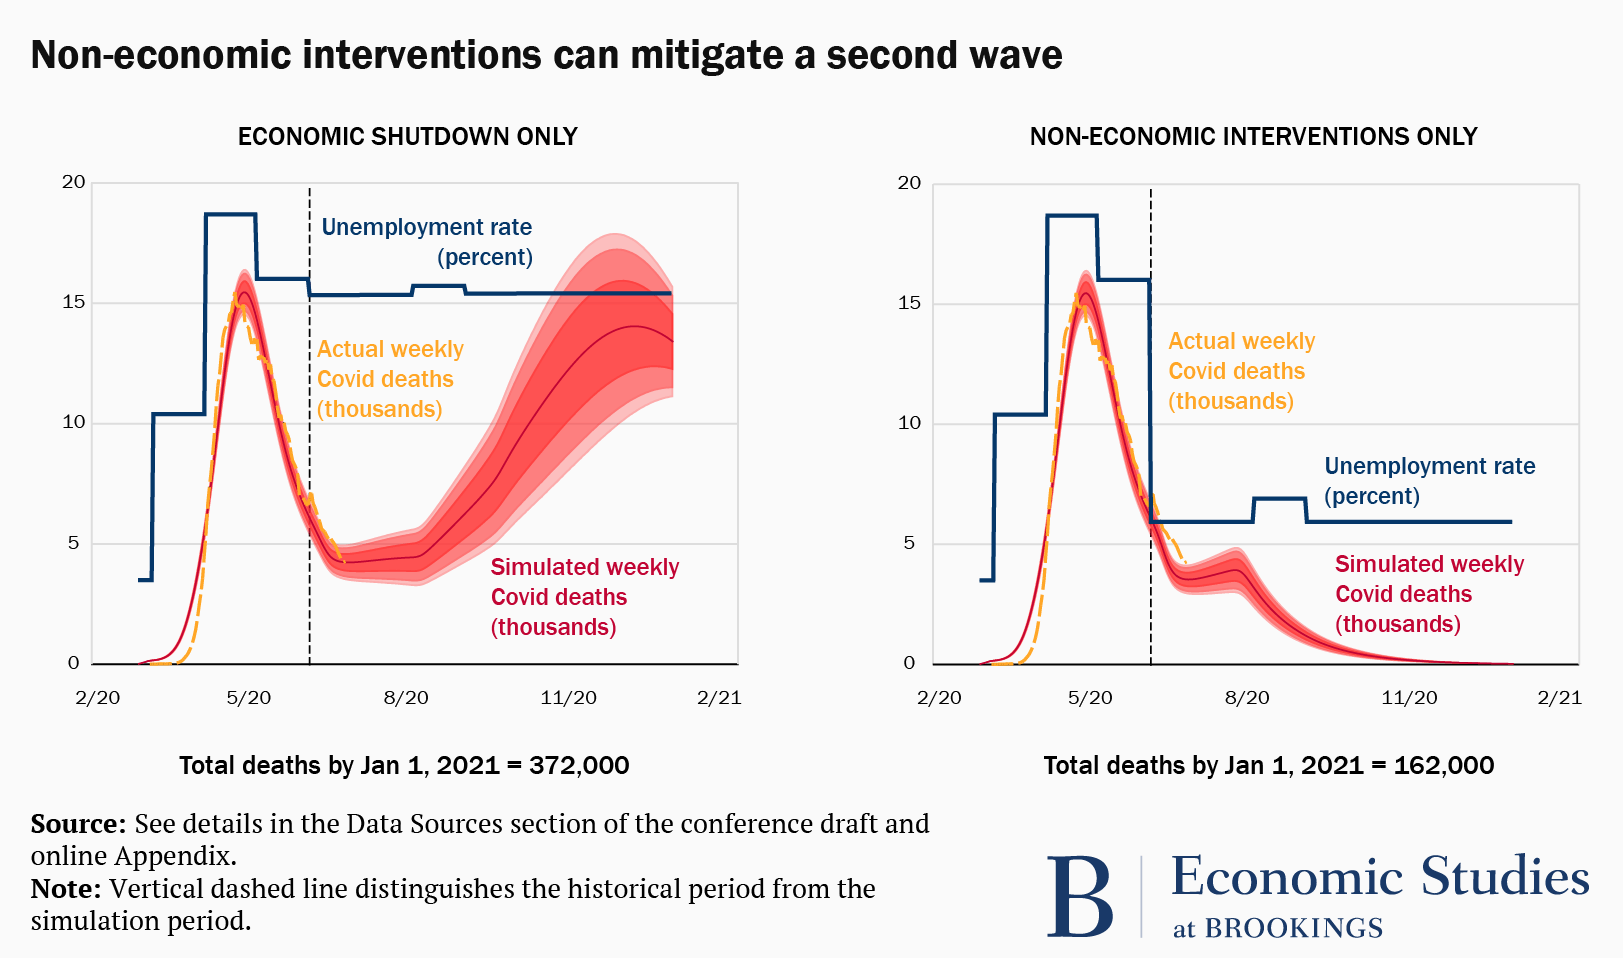 Two graphs comparing an economic shutdown with non-economic interventions